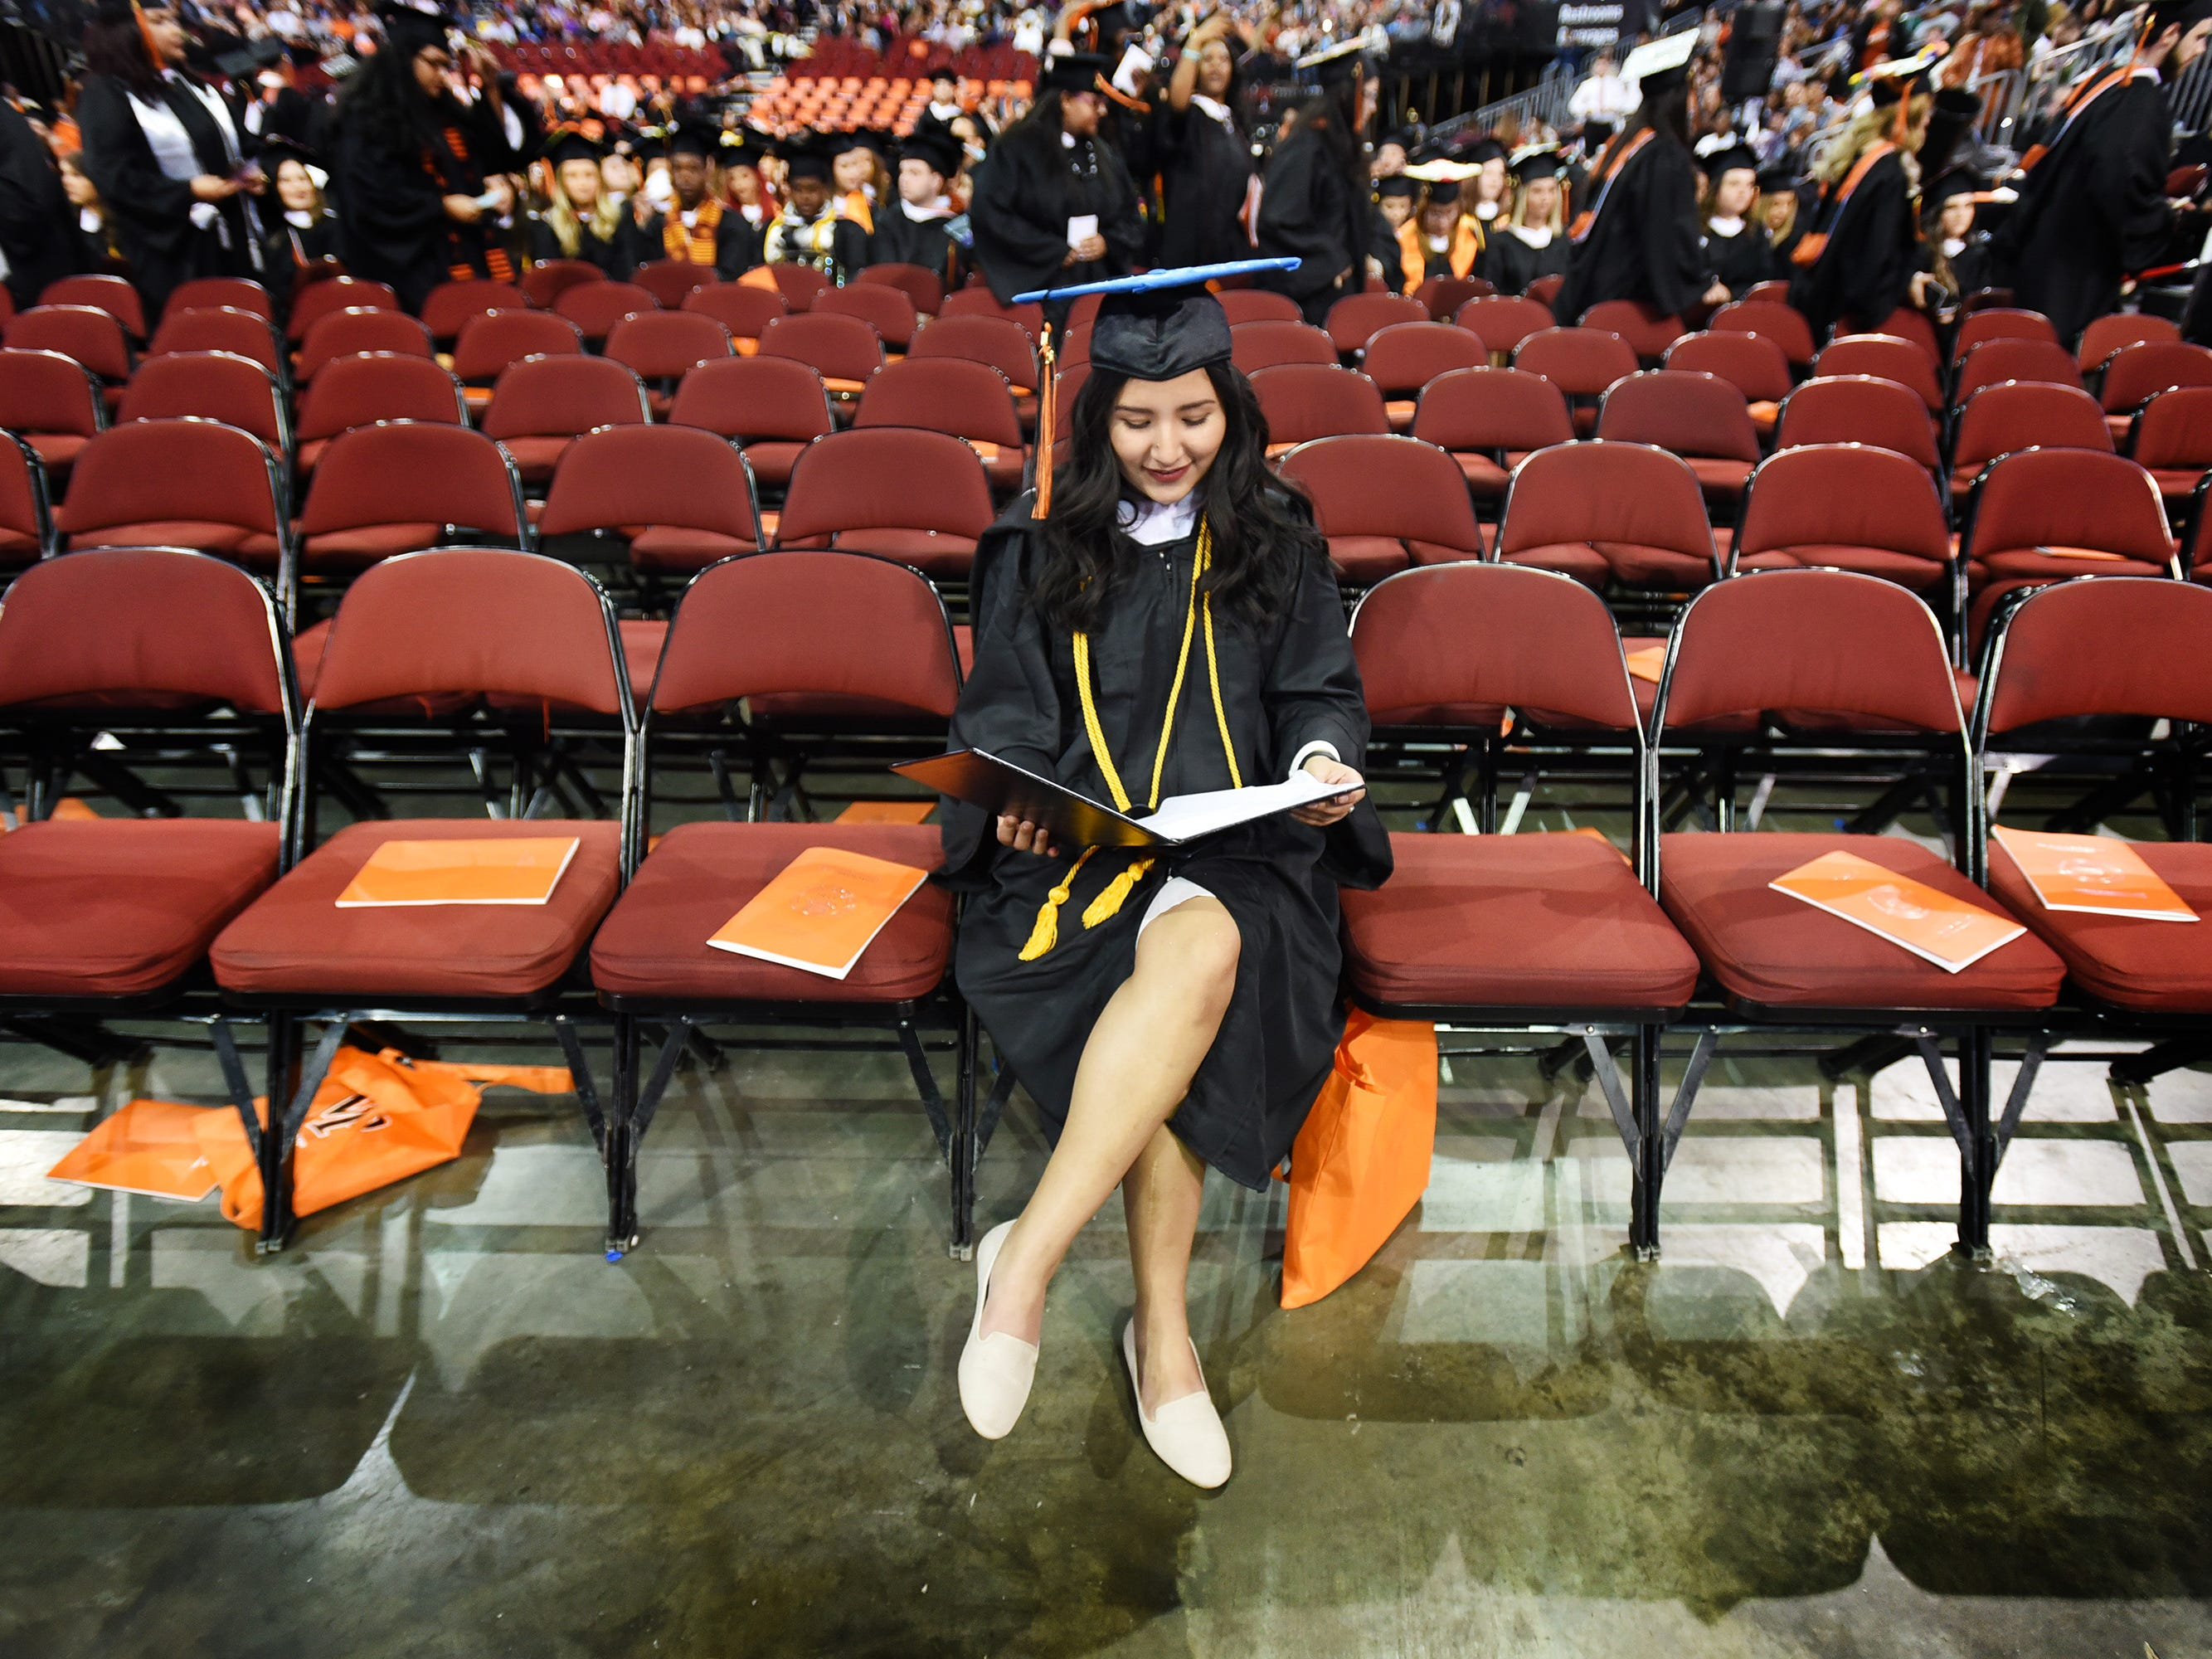 Denise Castillo of Paterson, Major in Communication Media Production, sits alone as she looks at her degree during the William Paterson University 2019 Commencement at the Prudential Center in Newark on 05/15/19.